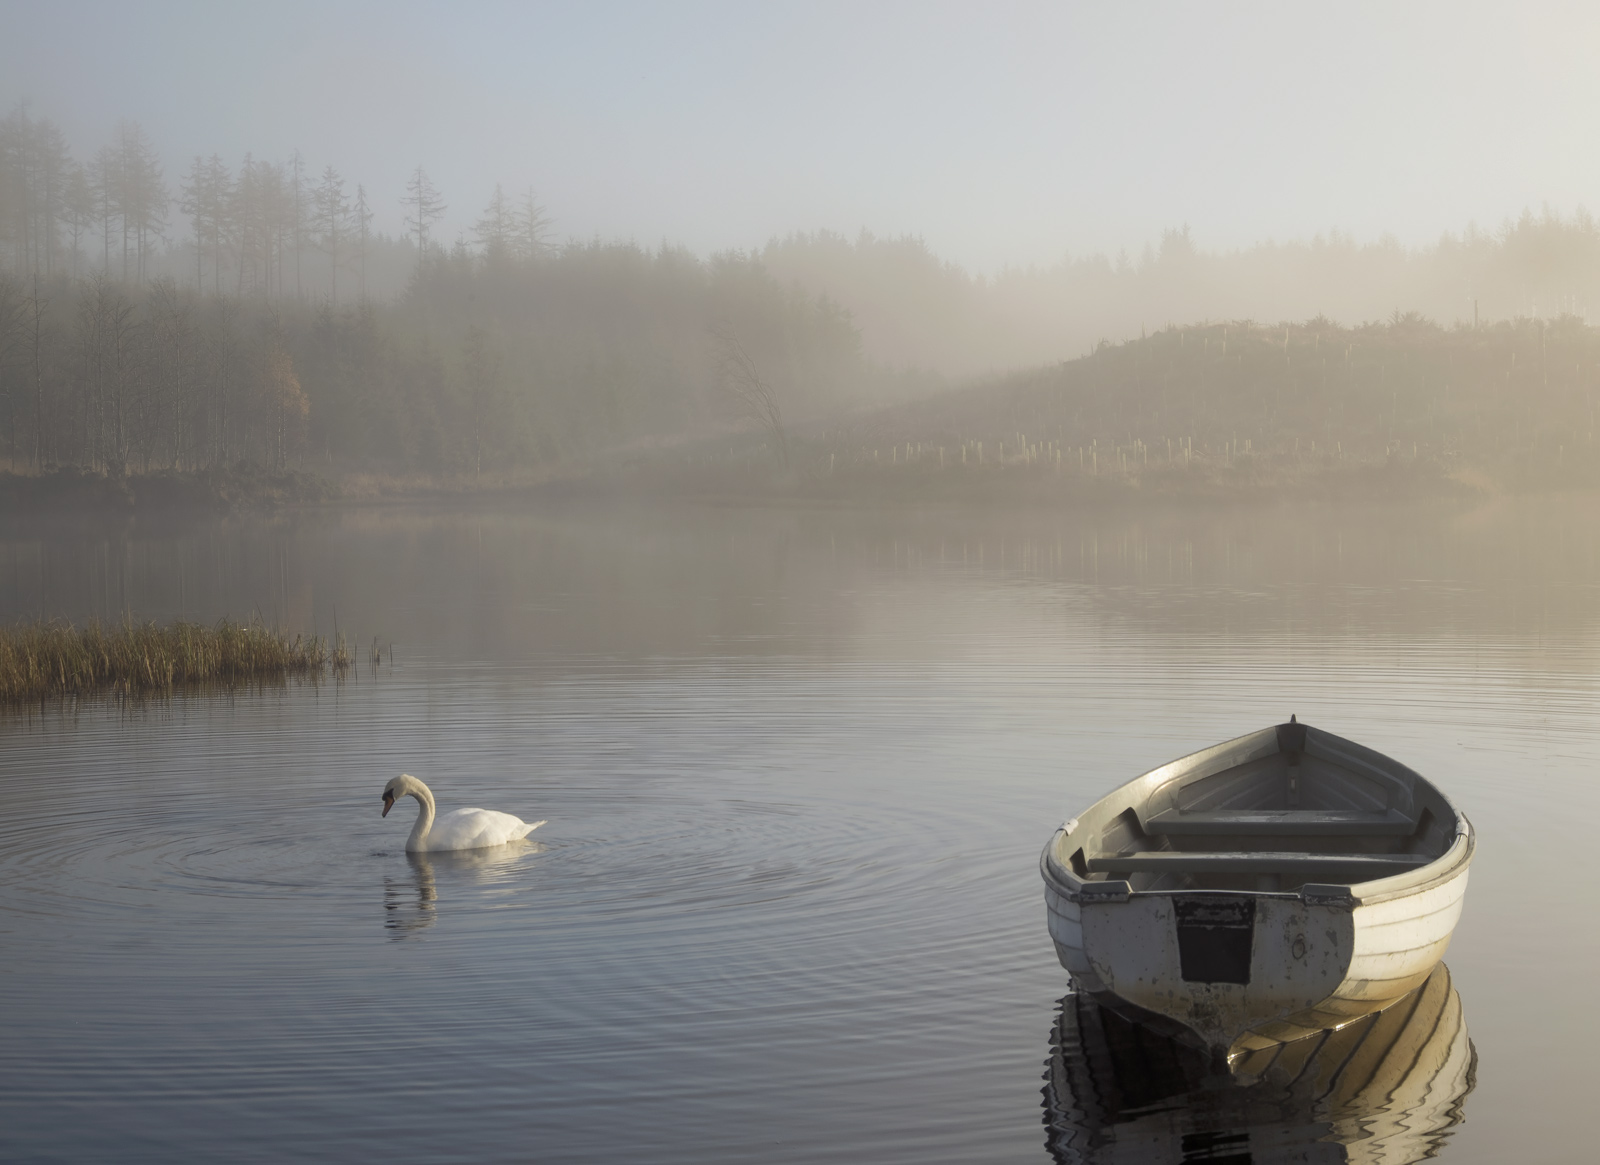 Swansong Rusky, Loch Rusky, Trossachs, Scotland, mist, perfect, evocative, autumnal, stunning, swan, serenely, glided, photo